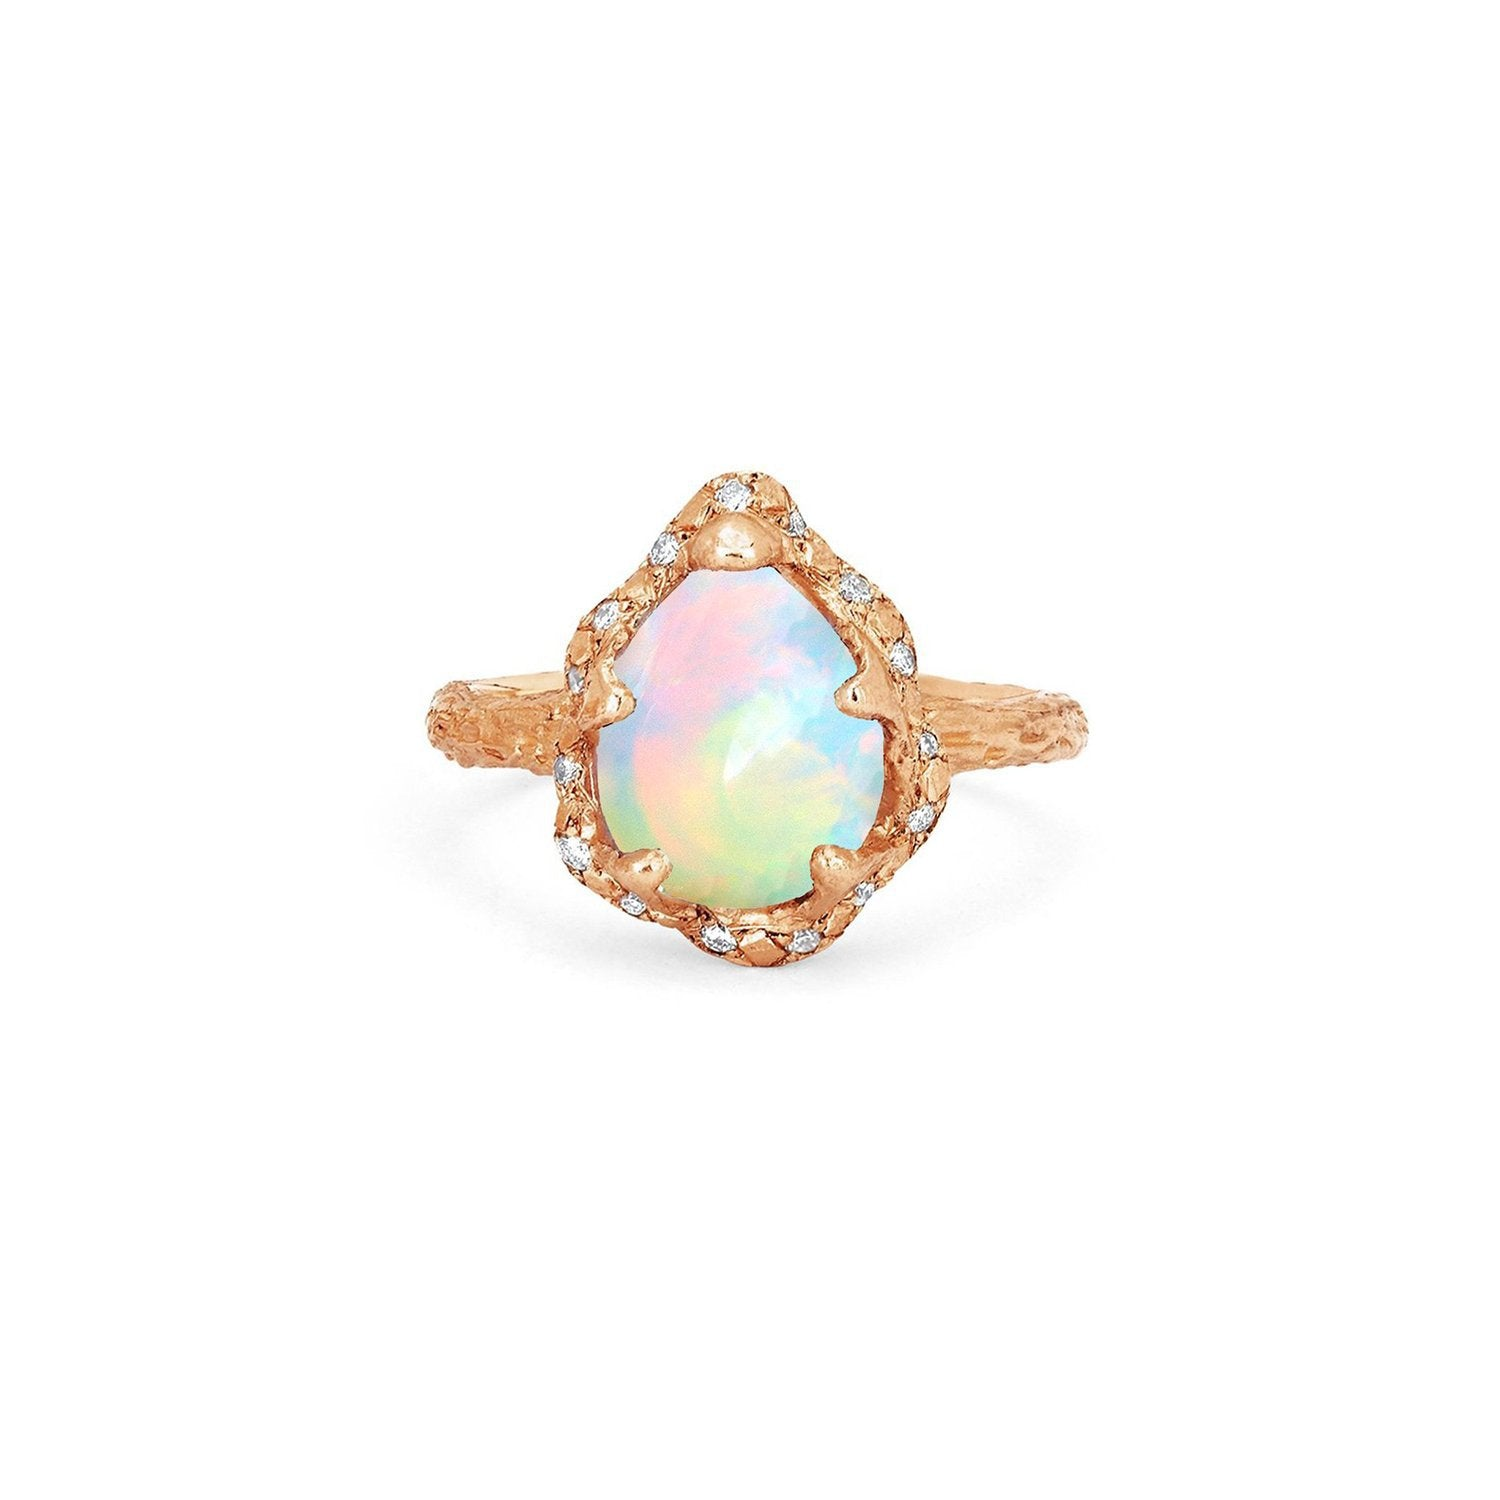 Baby Queen Water Drop White Opal Ring with Sprinkled Diamonds